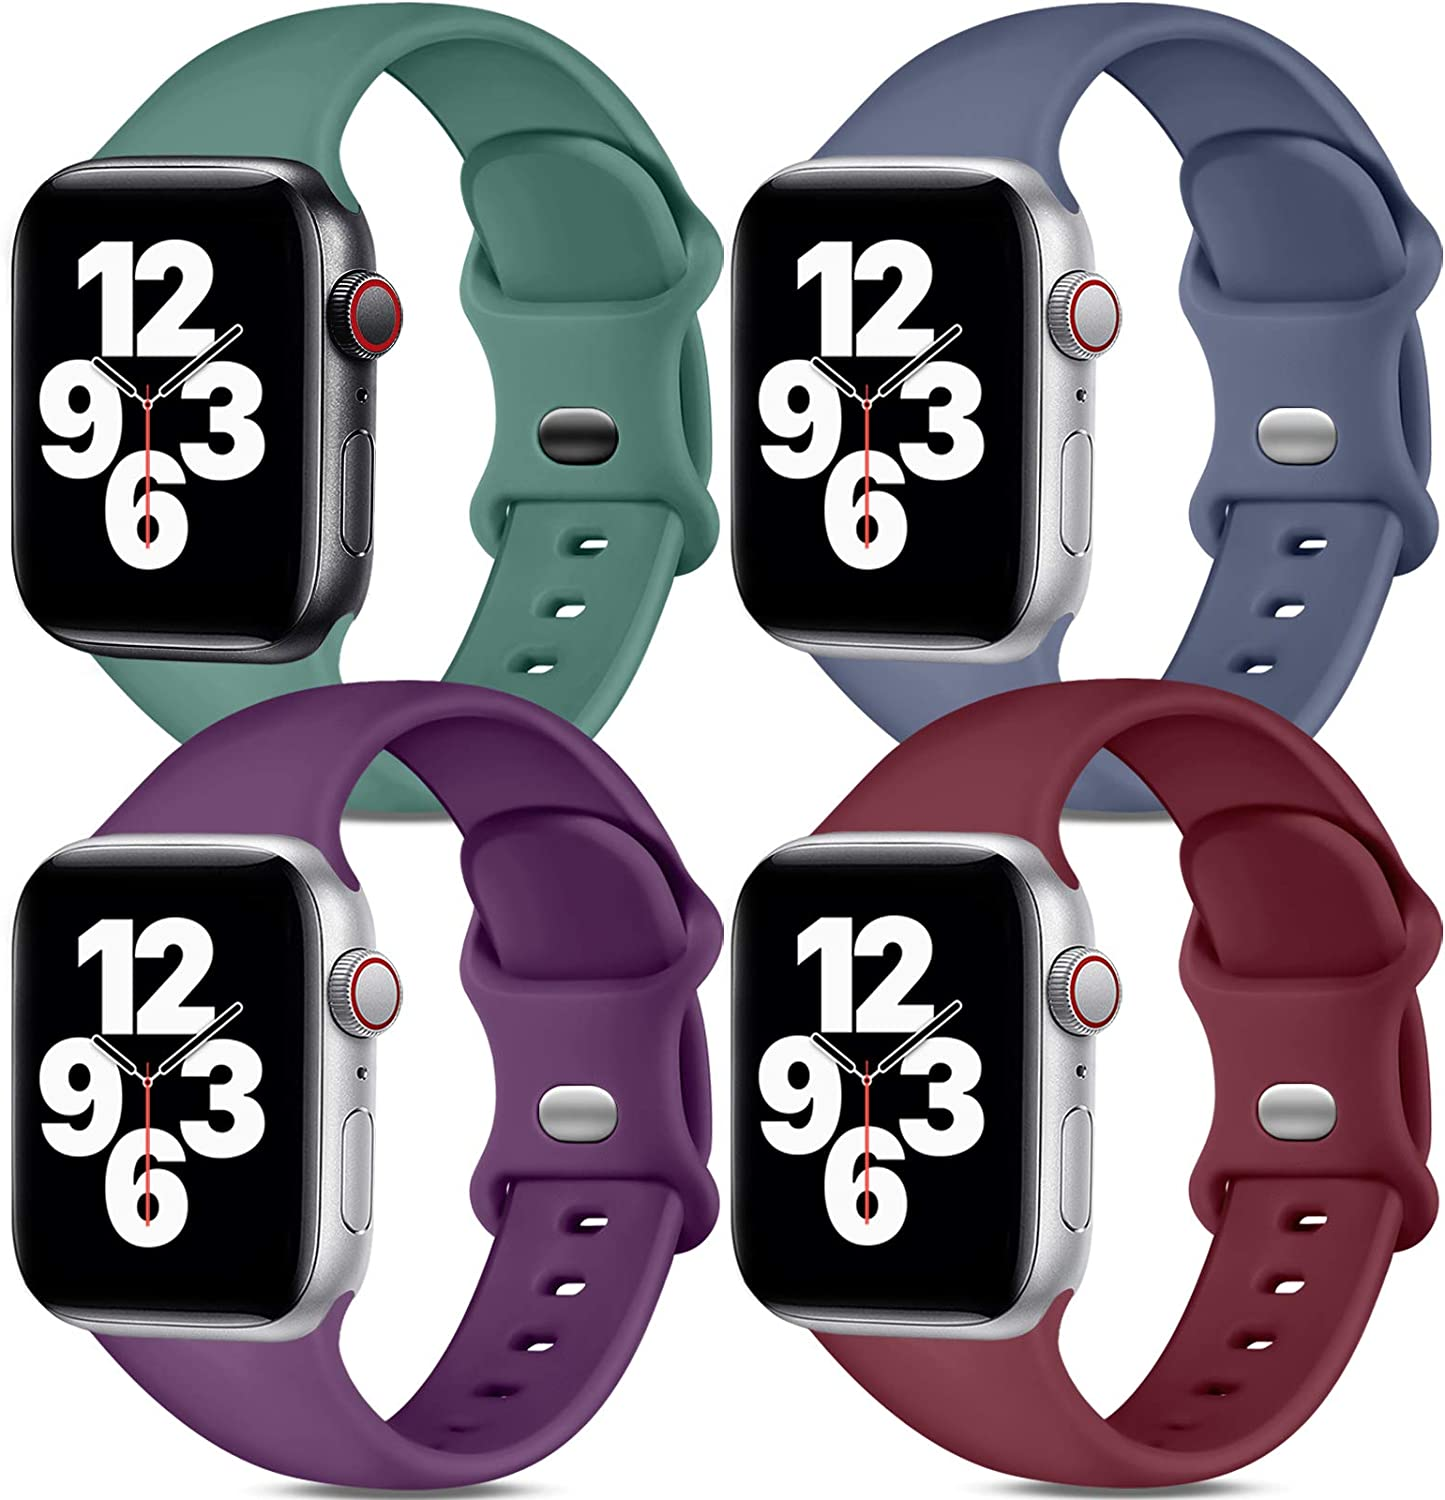 Dirrelo Band Compatible with Apple Watch Bands 38mm 40mm, [4-Pack] Soft Silicone Strap Wristbands for iWatch Series 3 5 6 4 2 1 SE Women Men, Small Ping Green, Blue, Dark Purple, Claret